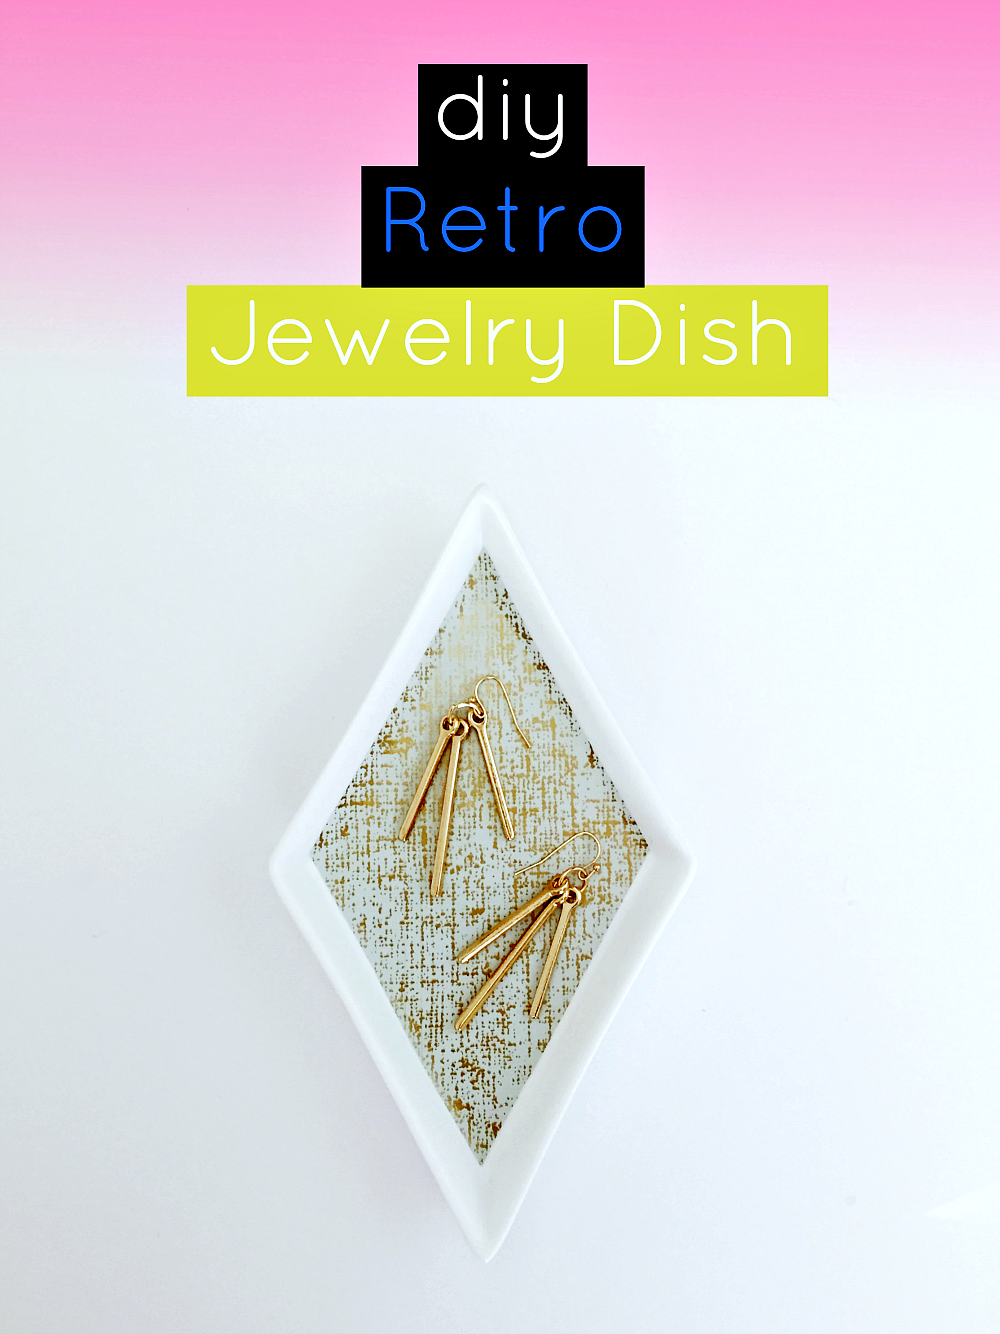 DIY Retro Jewelry Dish